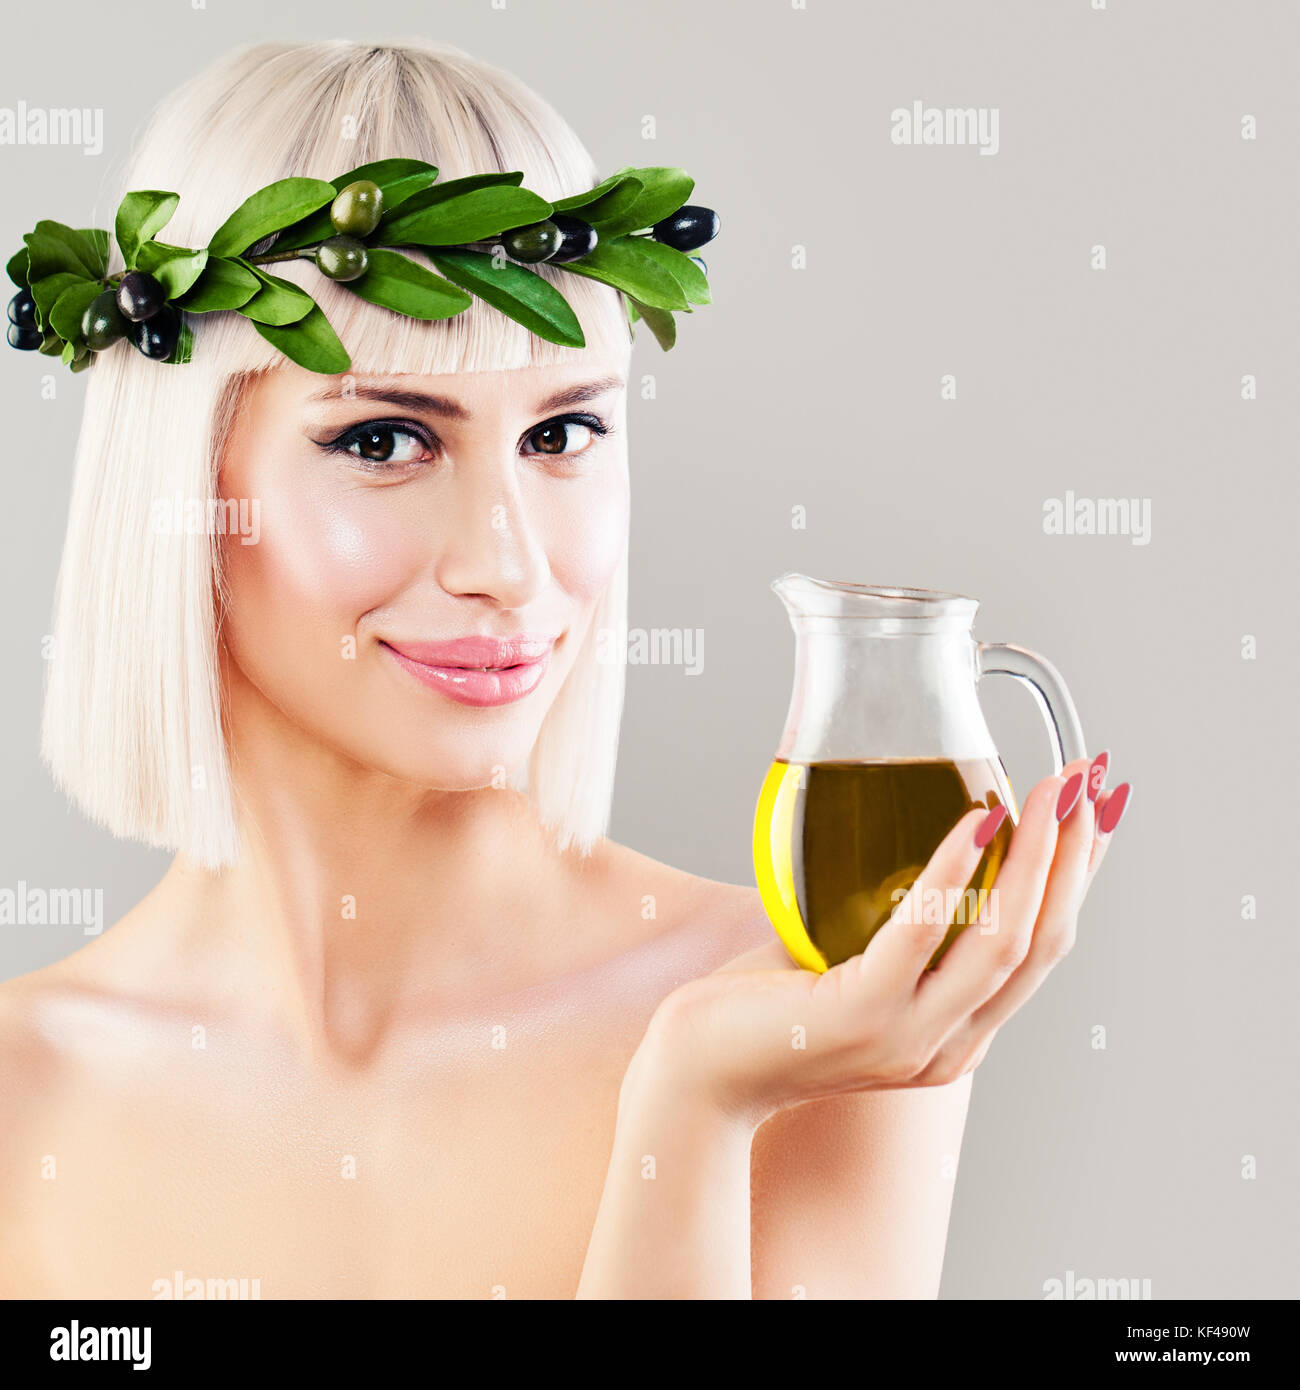 Beautiful Woman with Green Olive Leaves Wreath and Glass Bottle of Organic Olive Oil. Healthy Eating and Mediterranean - Stock Image